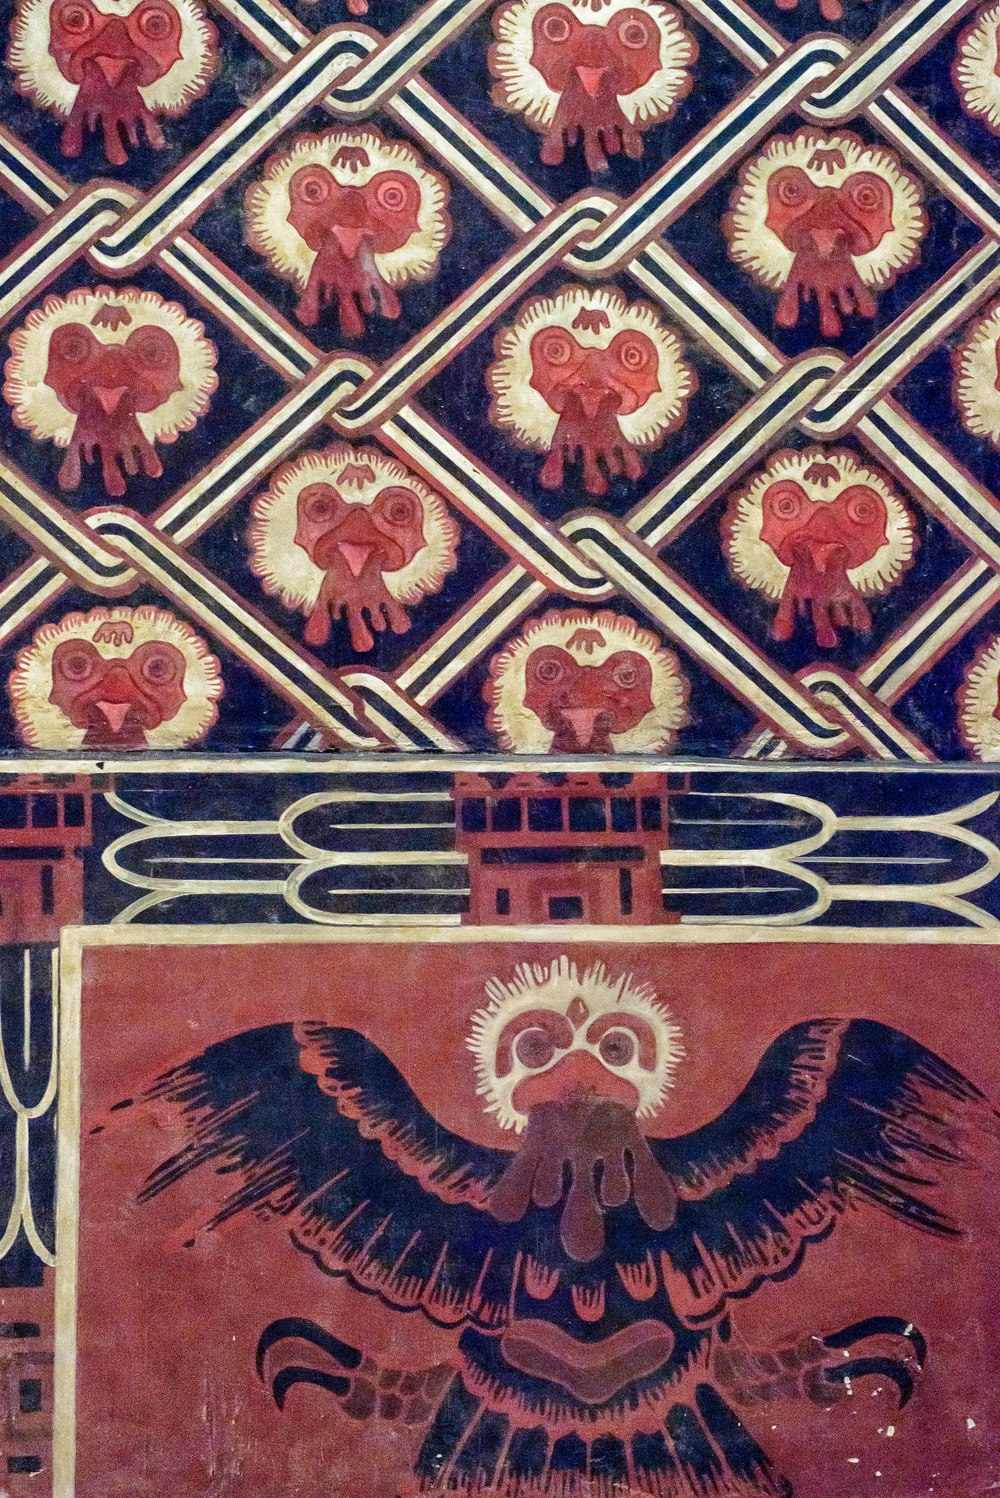 Reproduction of the Portico 25 from Tetitla. This reproduction shows some of the wall paintings that can still be found at Portico and Patio 25 at Tetitla residential complex. In this rendering of the northern wall, the eagle is shown with outstretched wings.